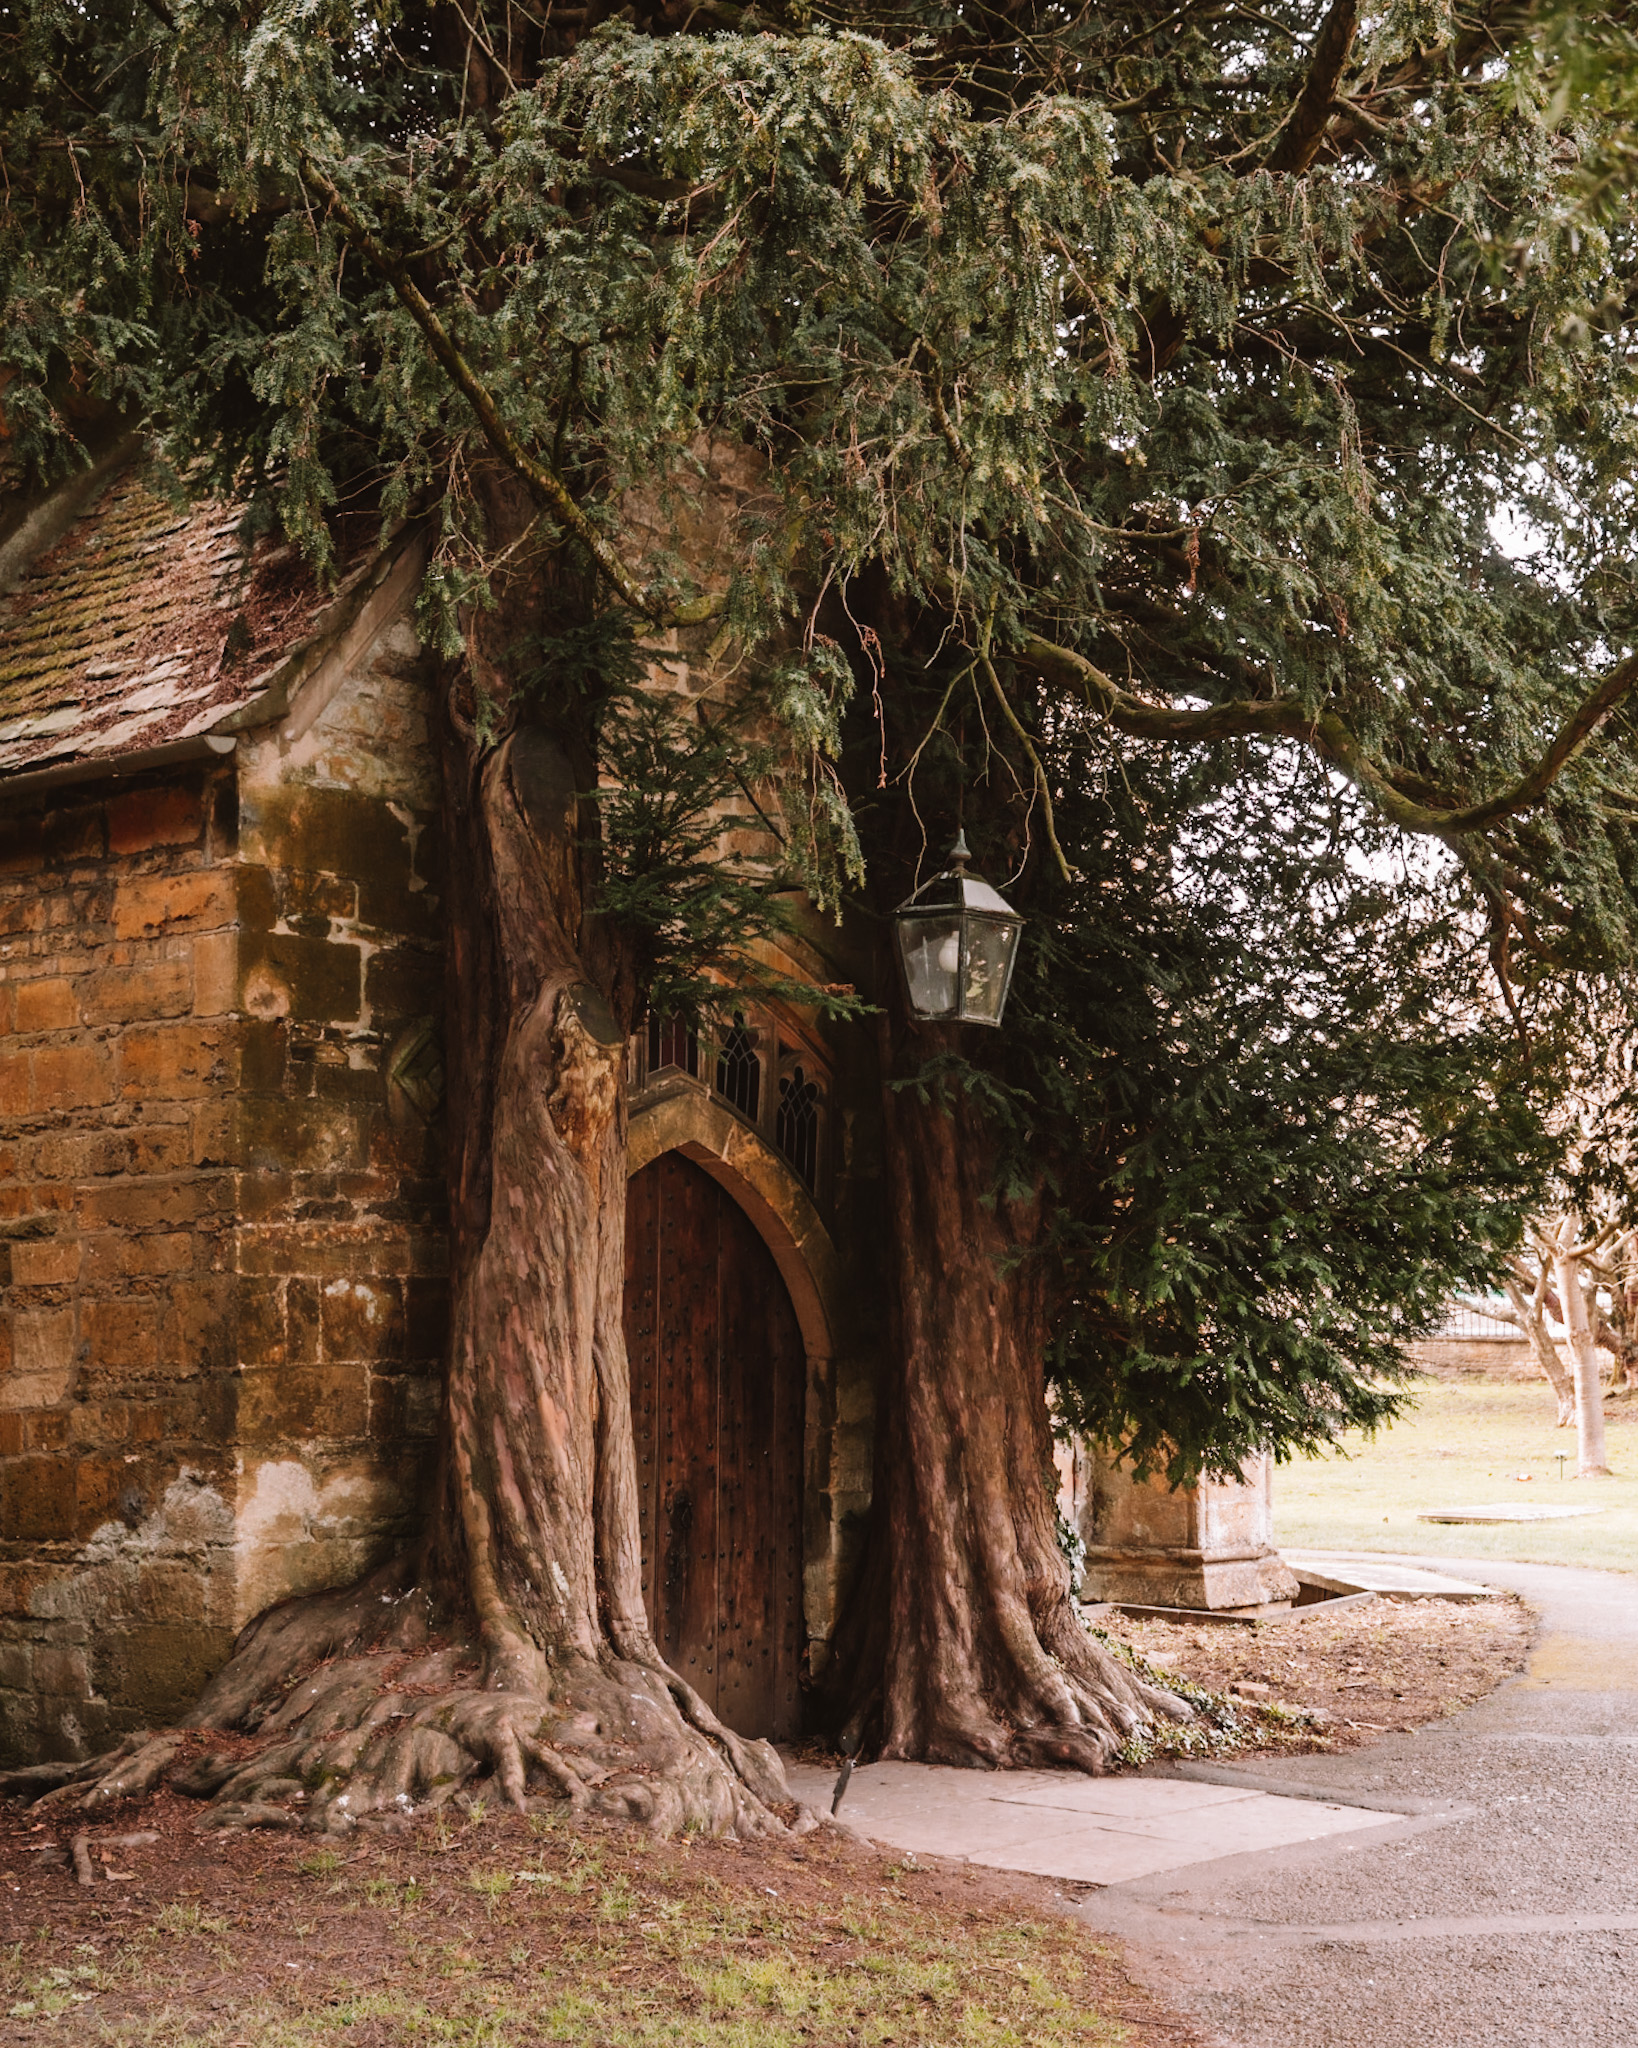 most-interesting-place-stow-on-the-wold-church